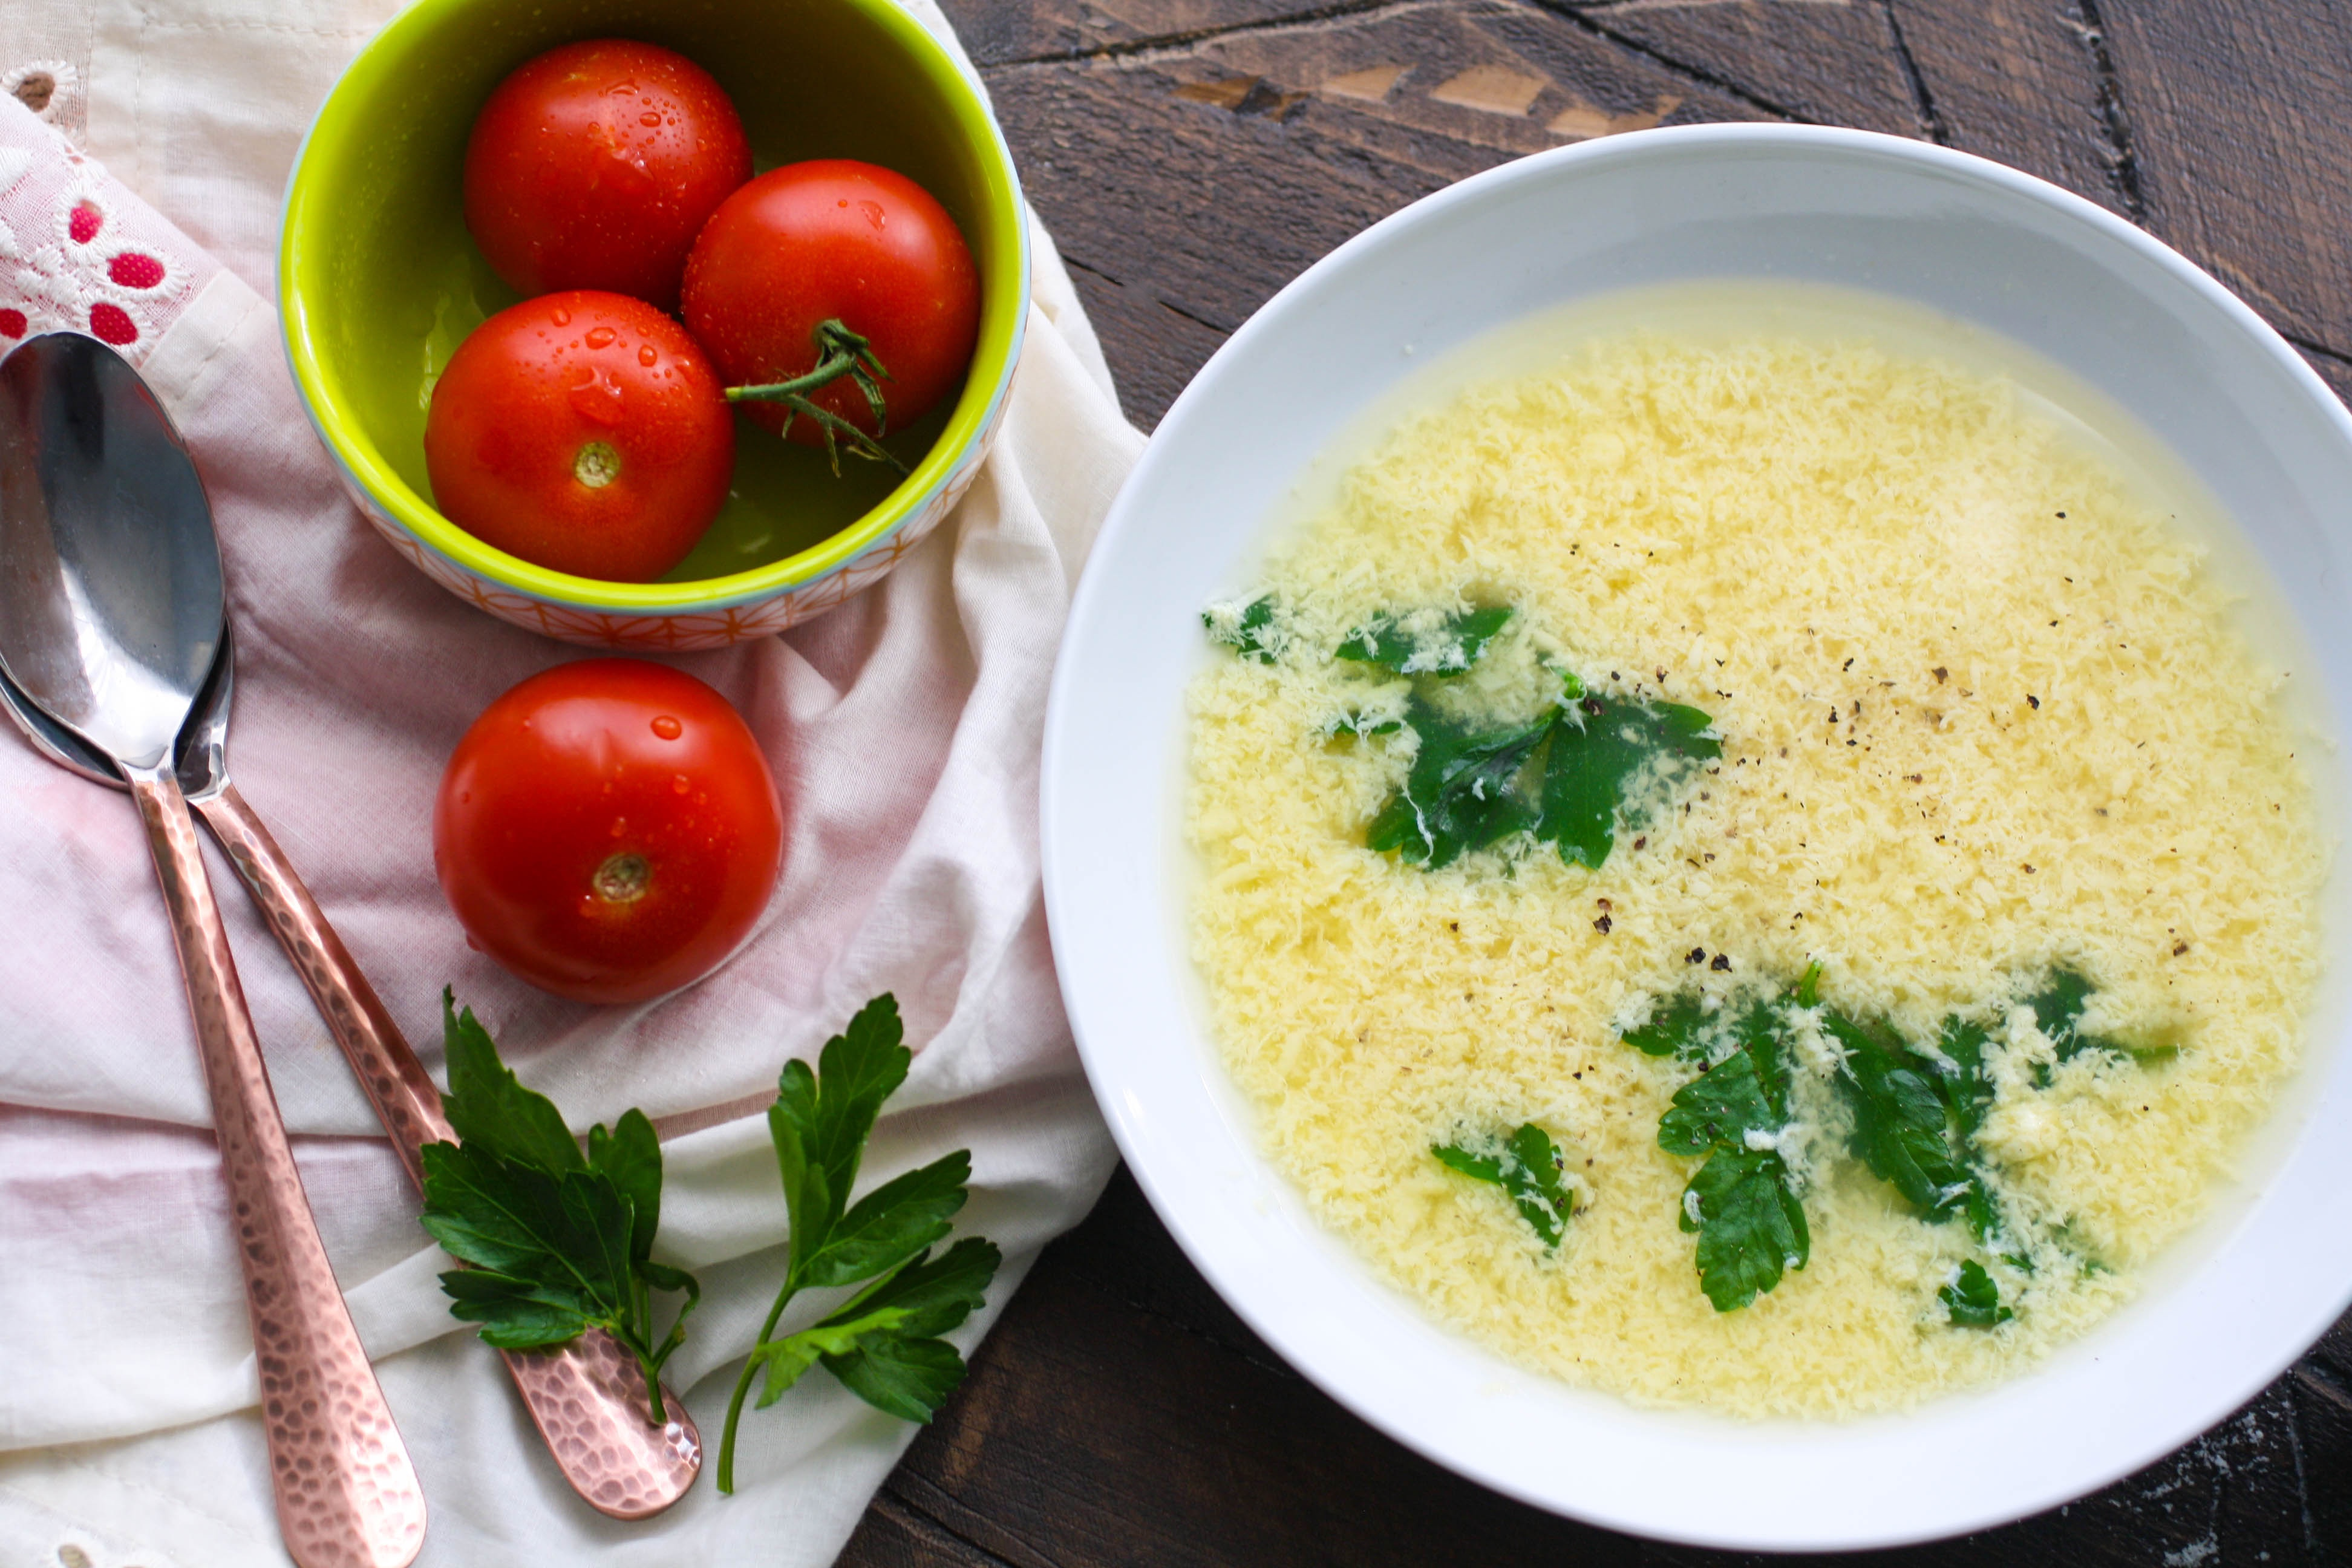 Stracchiatella soup (Italian egg drop soup) is a wonderfully simple dish to warm you! You'll love this simple stracchiatella soup!